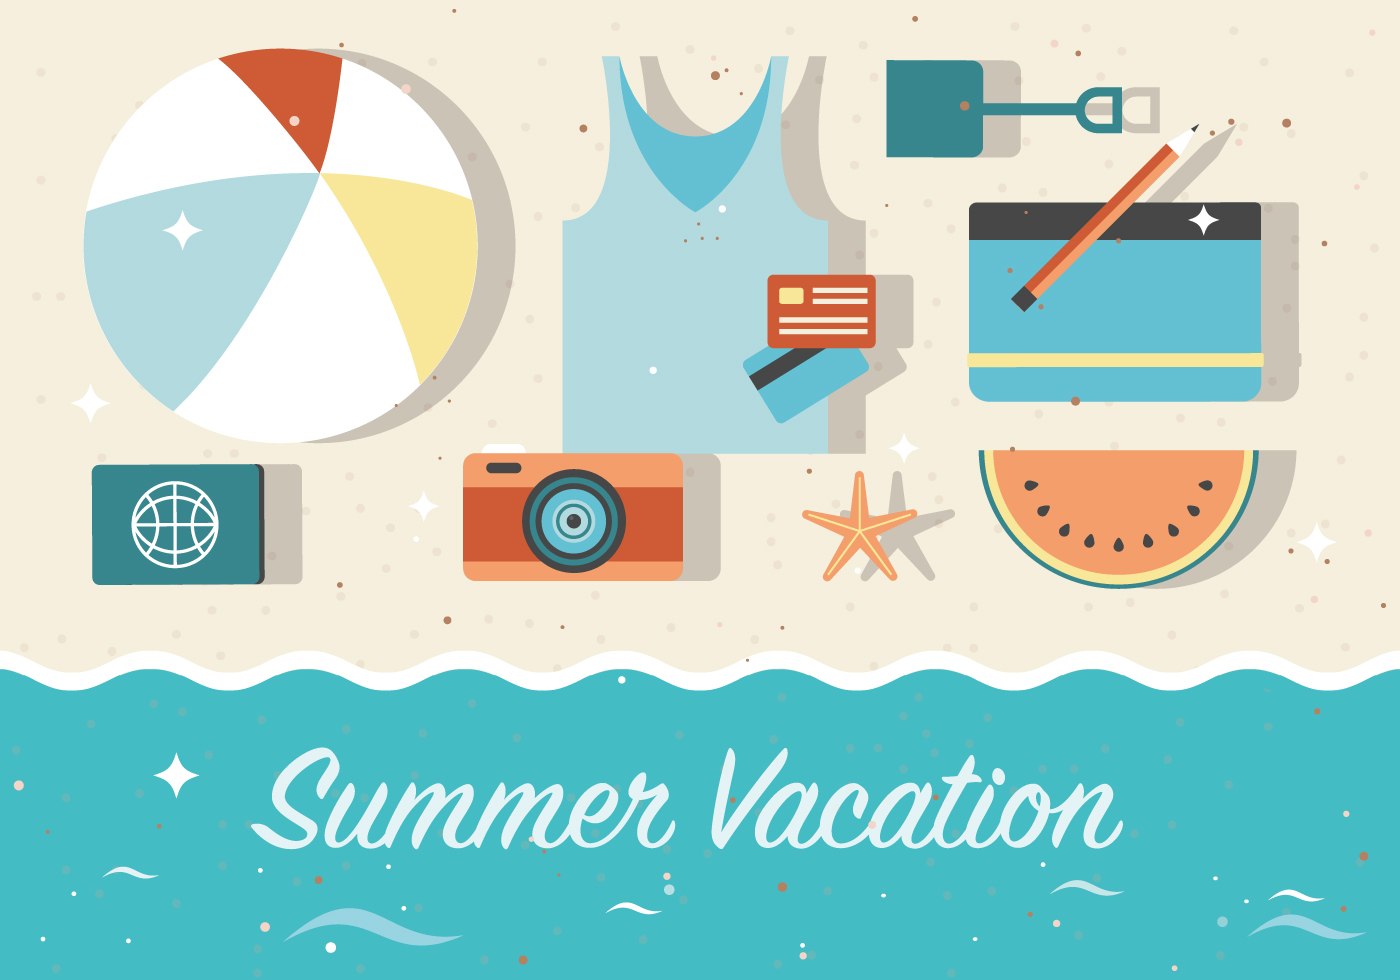 Free Summer Vacation Vector Background Download Free